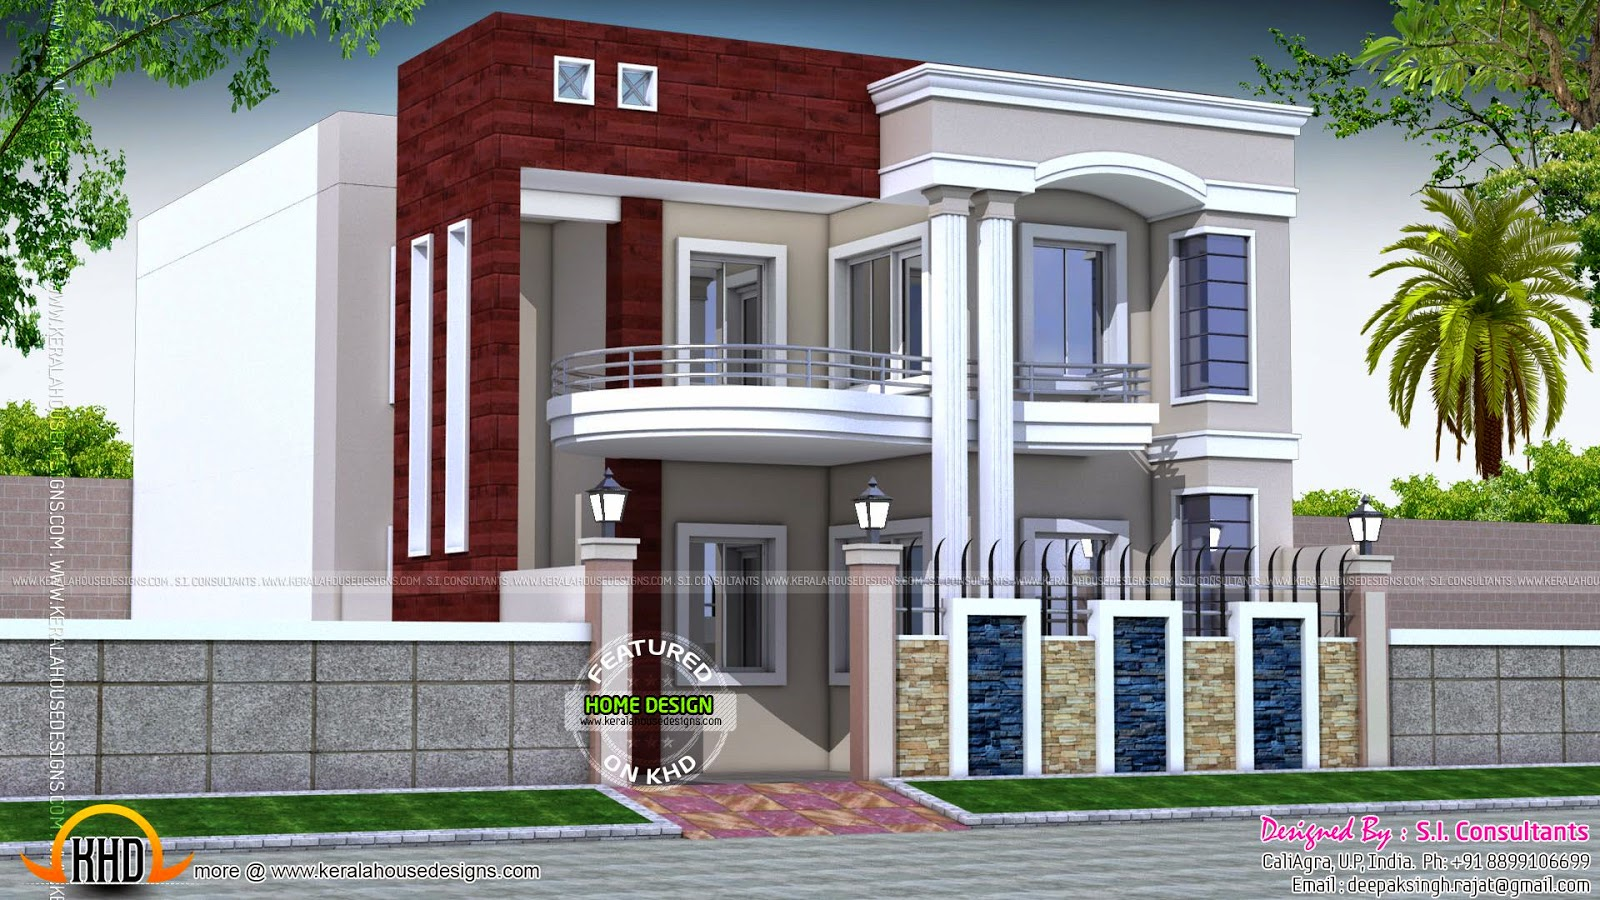 House design in north india kerala home design and floor Indian house front design photo